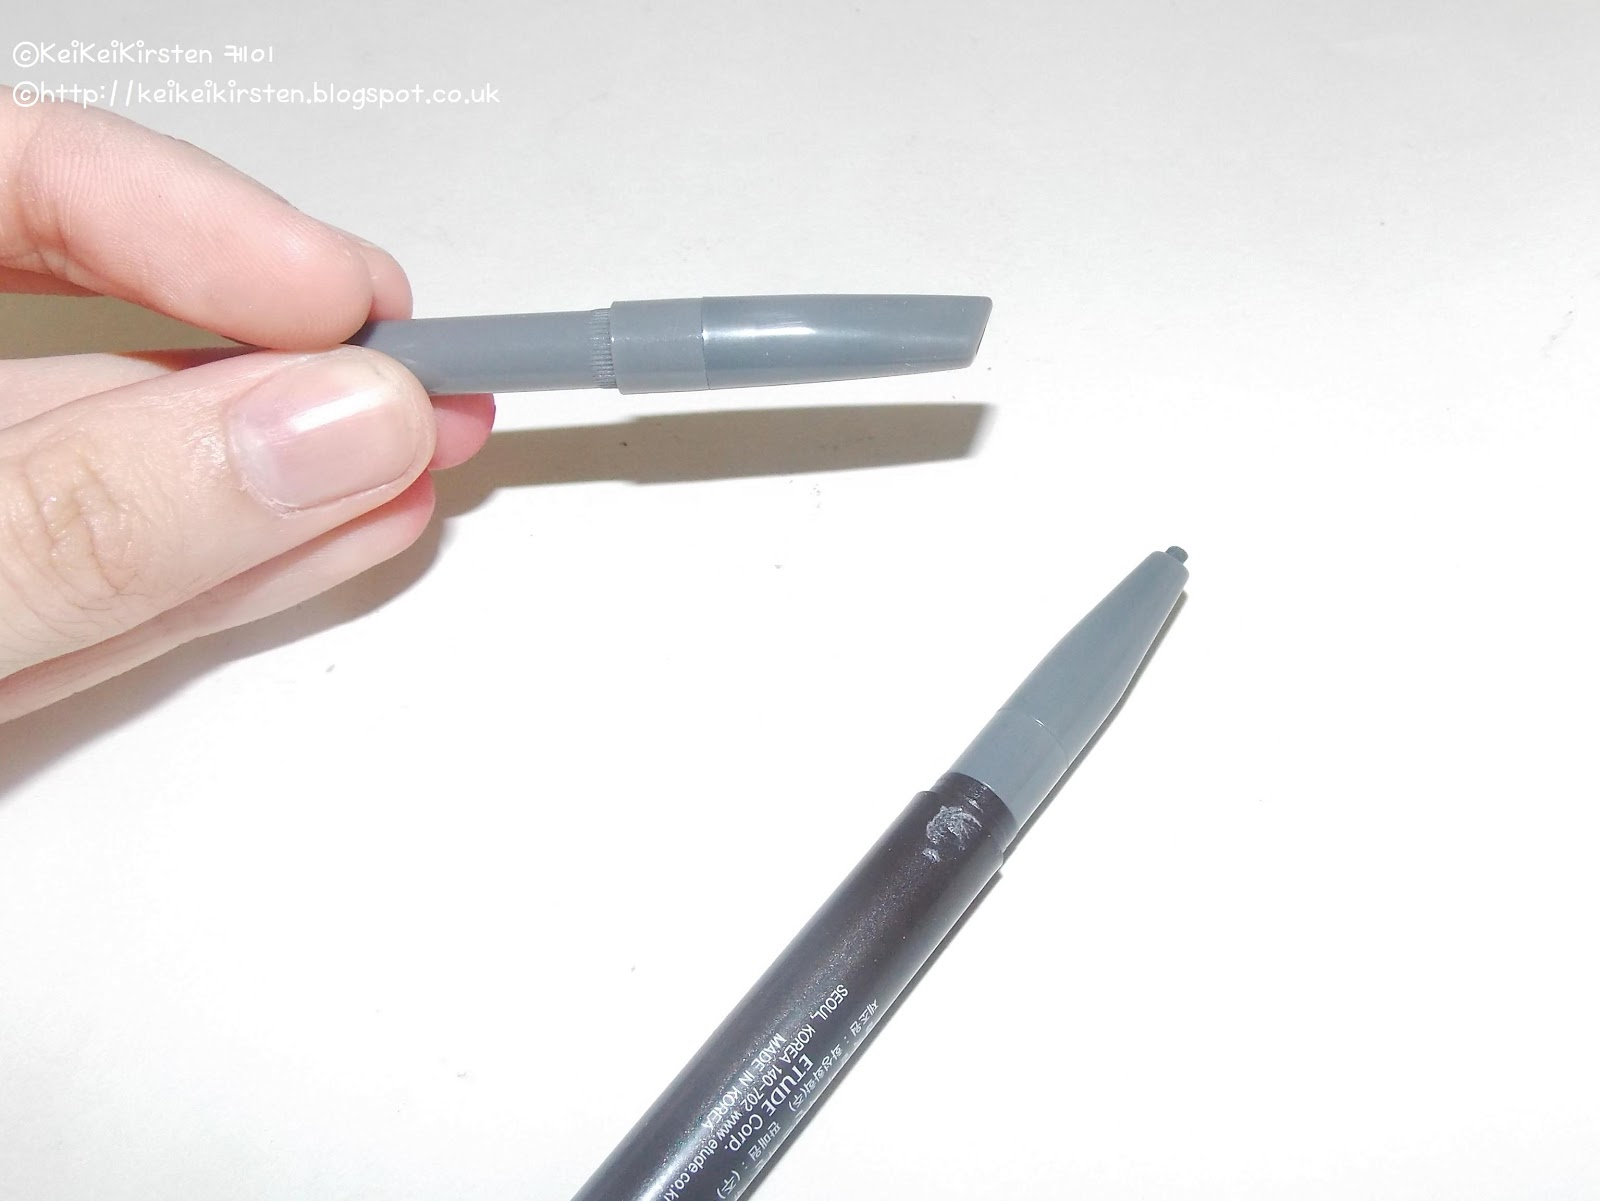 Keikeikirsten 05 Drawing Eyebrow New When Your Etude House Pencils Original Crayon Runs Out All You Got To Do Is Remove It Attached The Refill In Its Place Super Quick